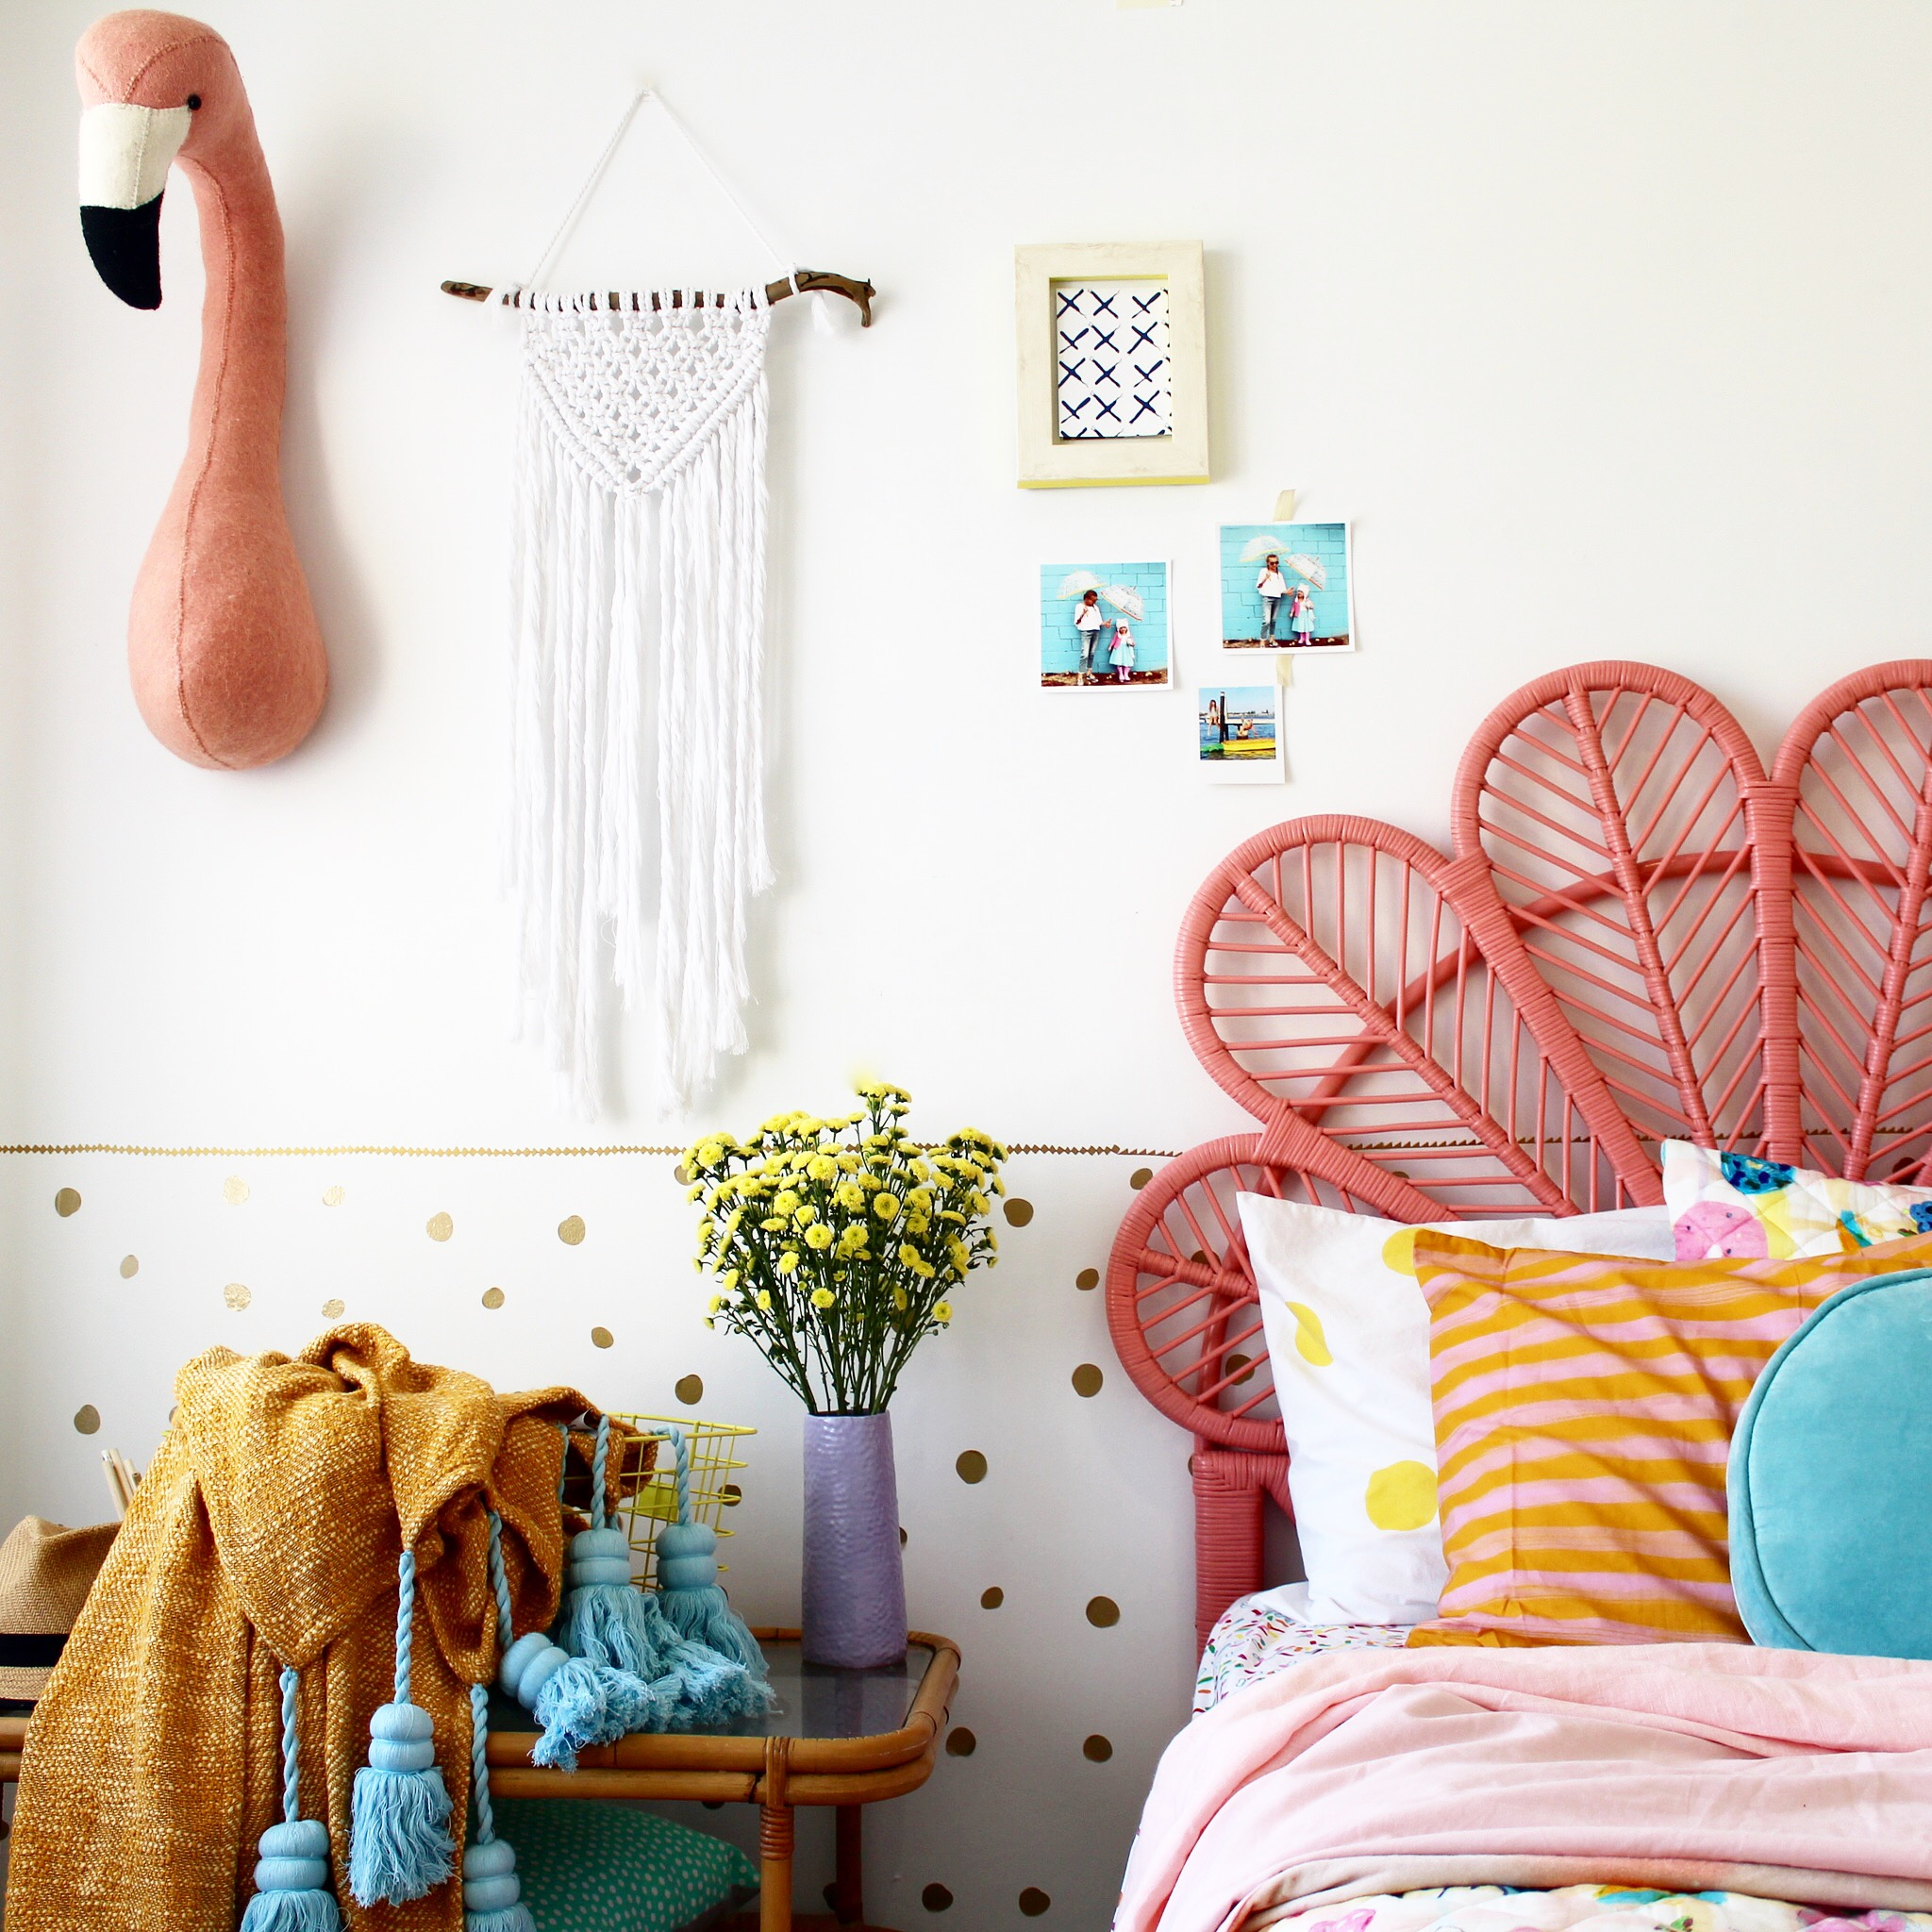 Girls bedroom ideas |kids bedding and decor | modern boho bedroom ideas on the blog